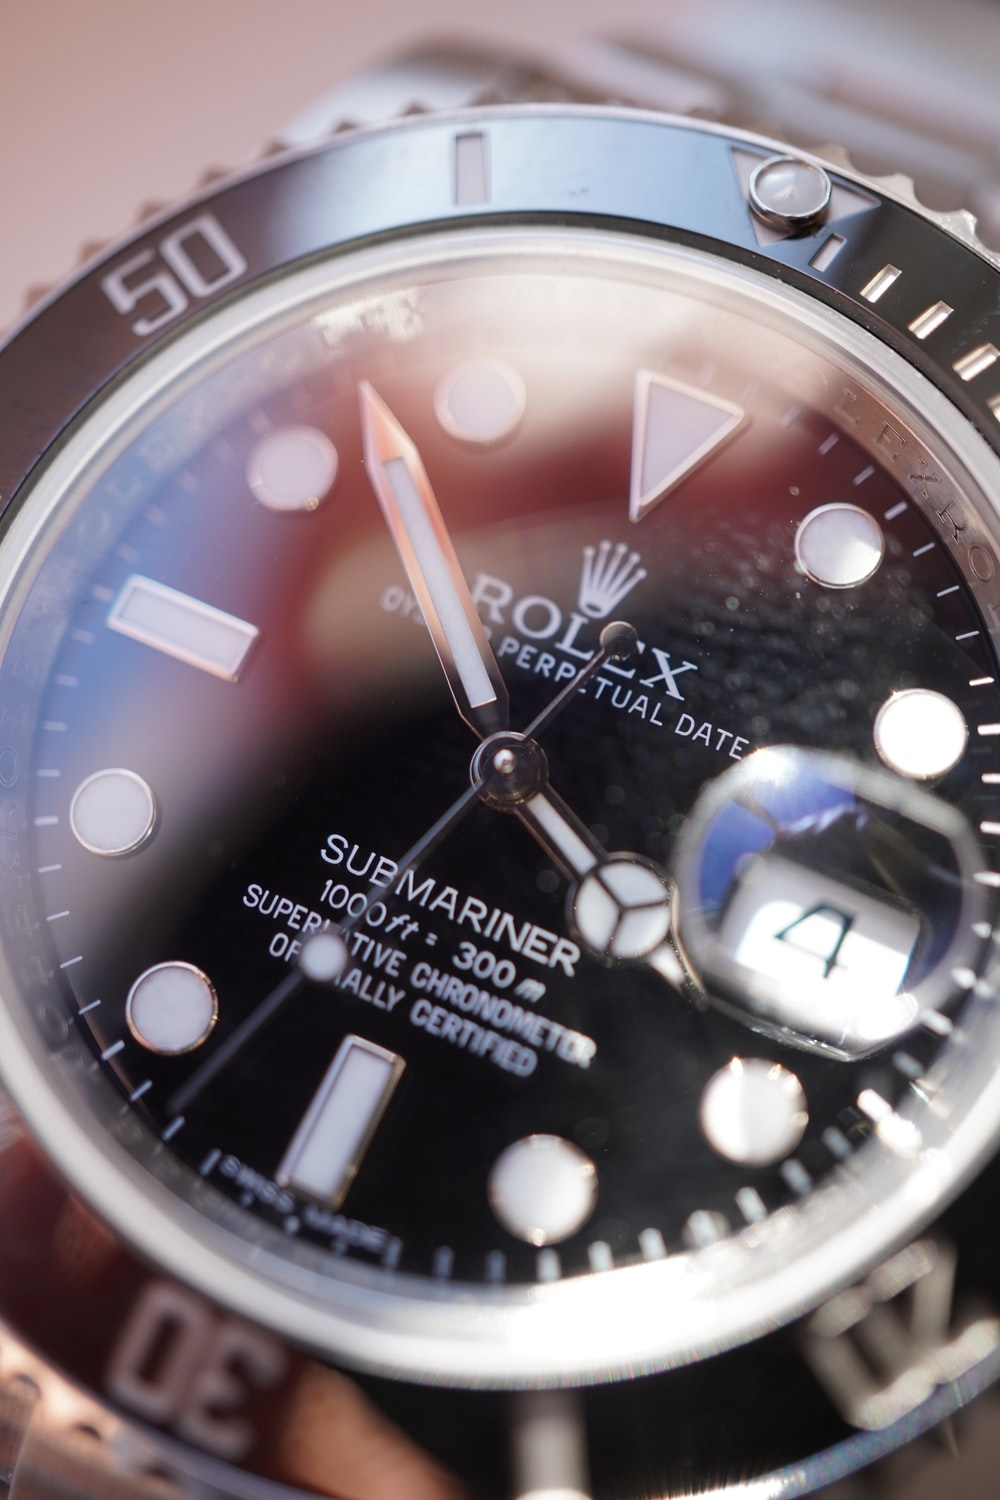 silver and blue round analog watch